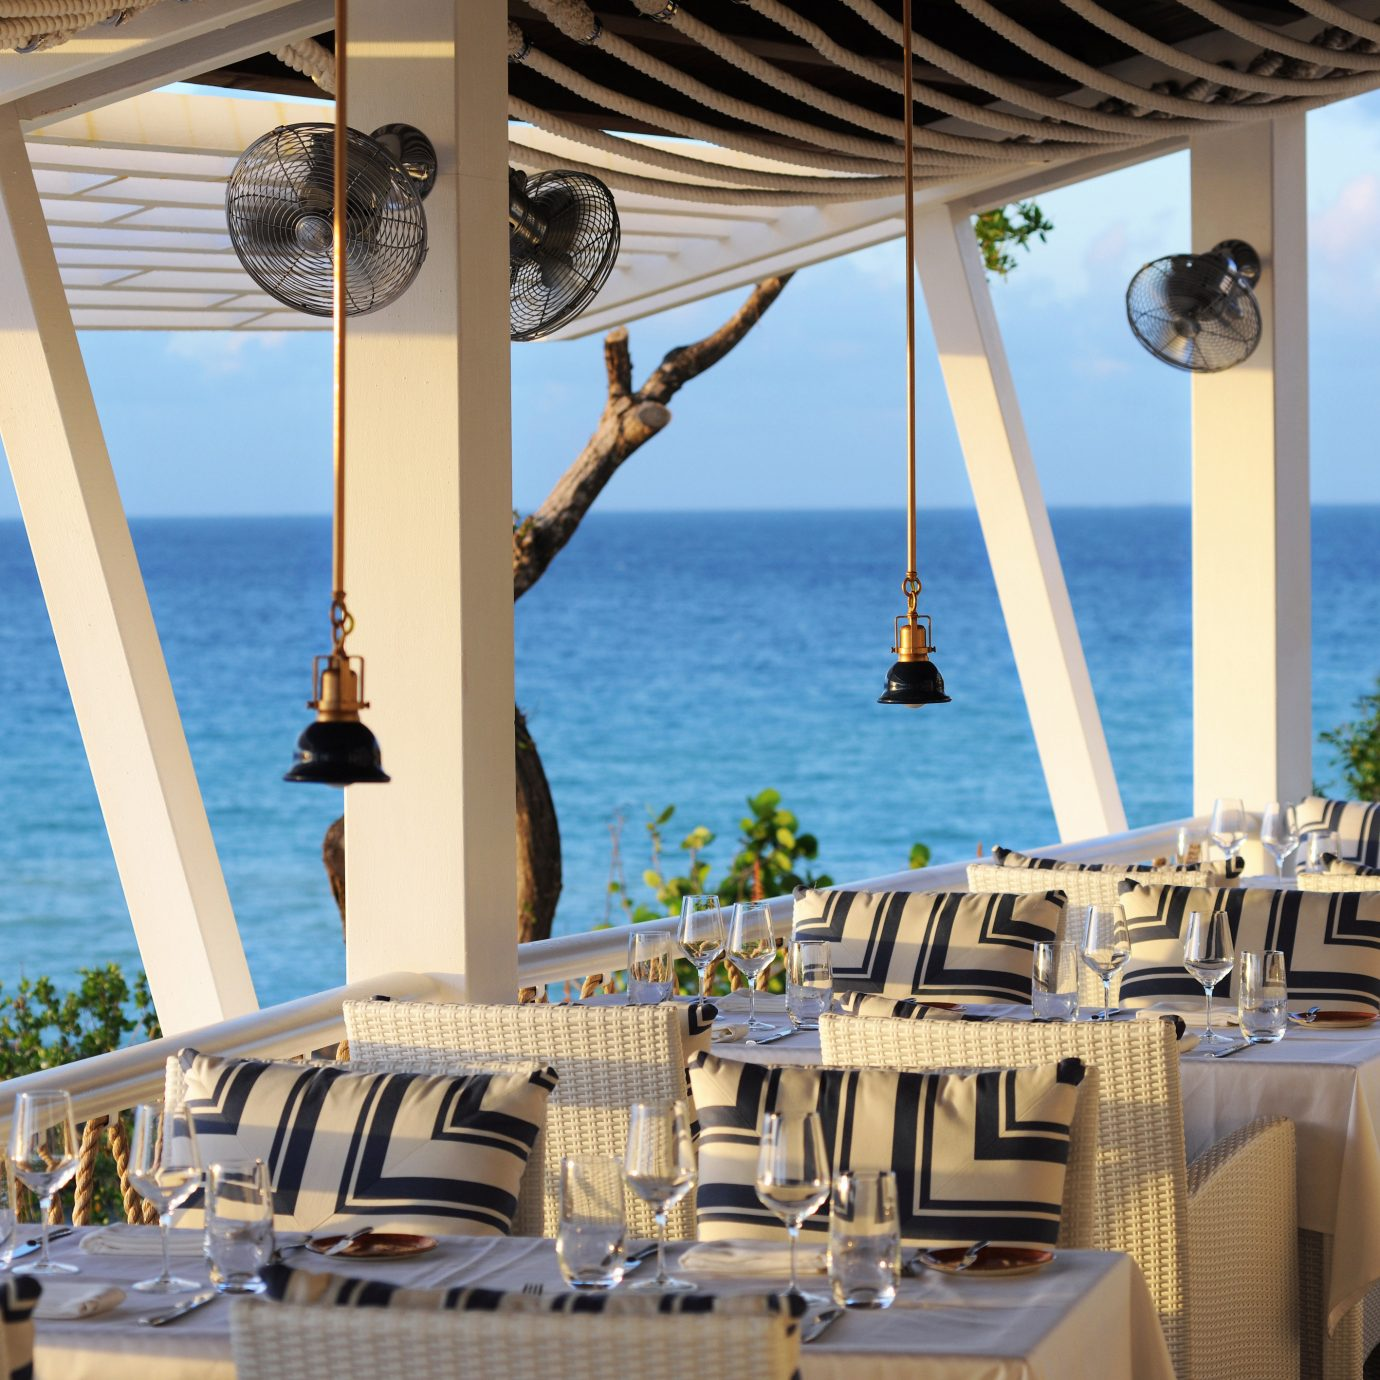 Balcony Beach Beachfront Cultural Dining Drink Eat Island Scenic views Waterfront water Boat Resort caribbean Deck restaurant yacht overlooking day